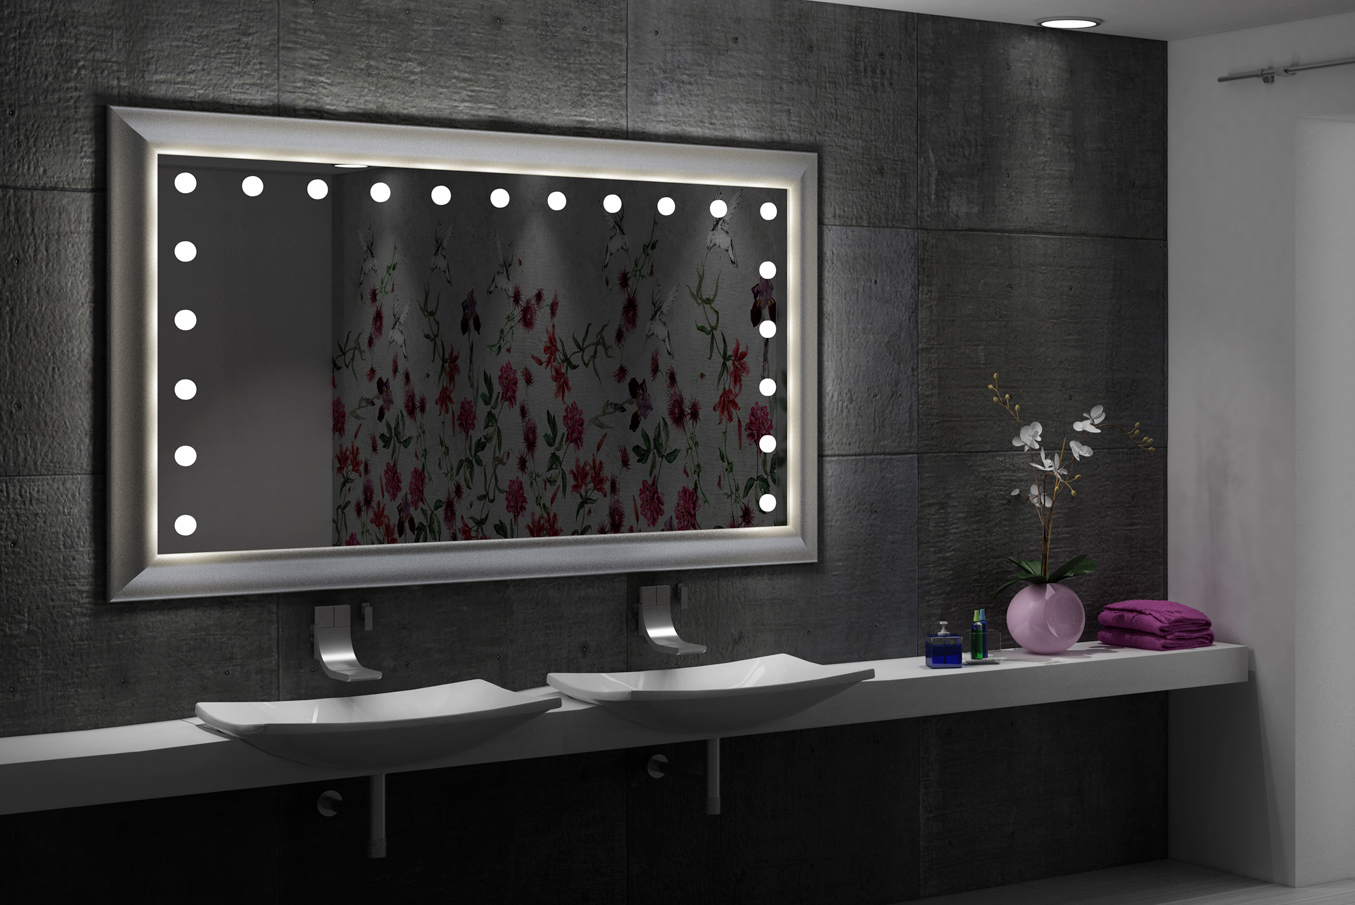 rectangular framed illuminated wall mirror for double sink bathroom, classic marble white interior design